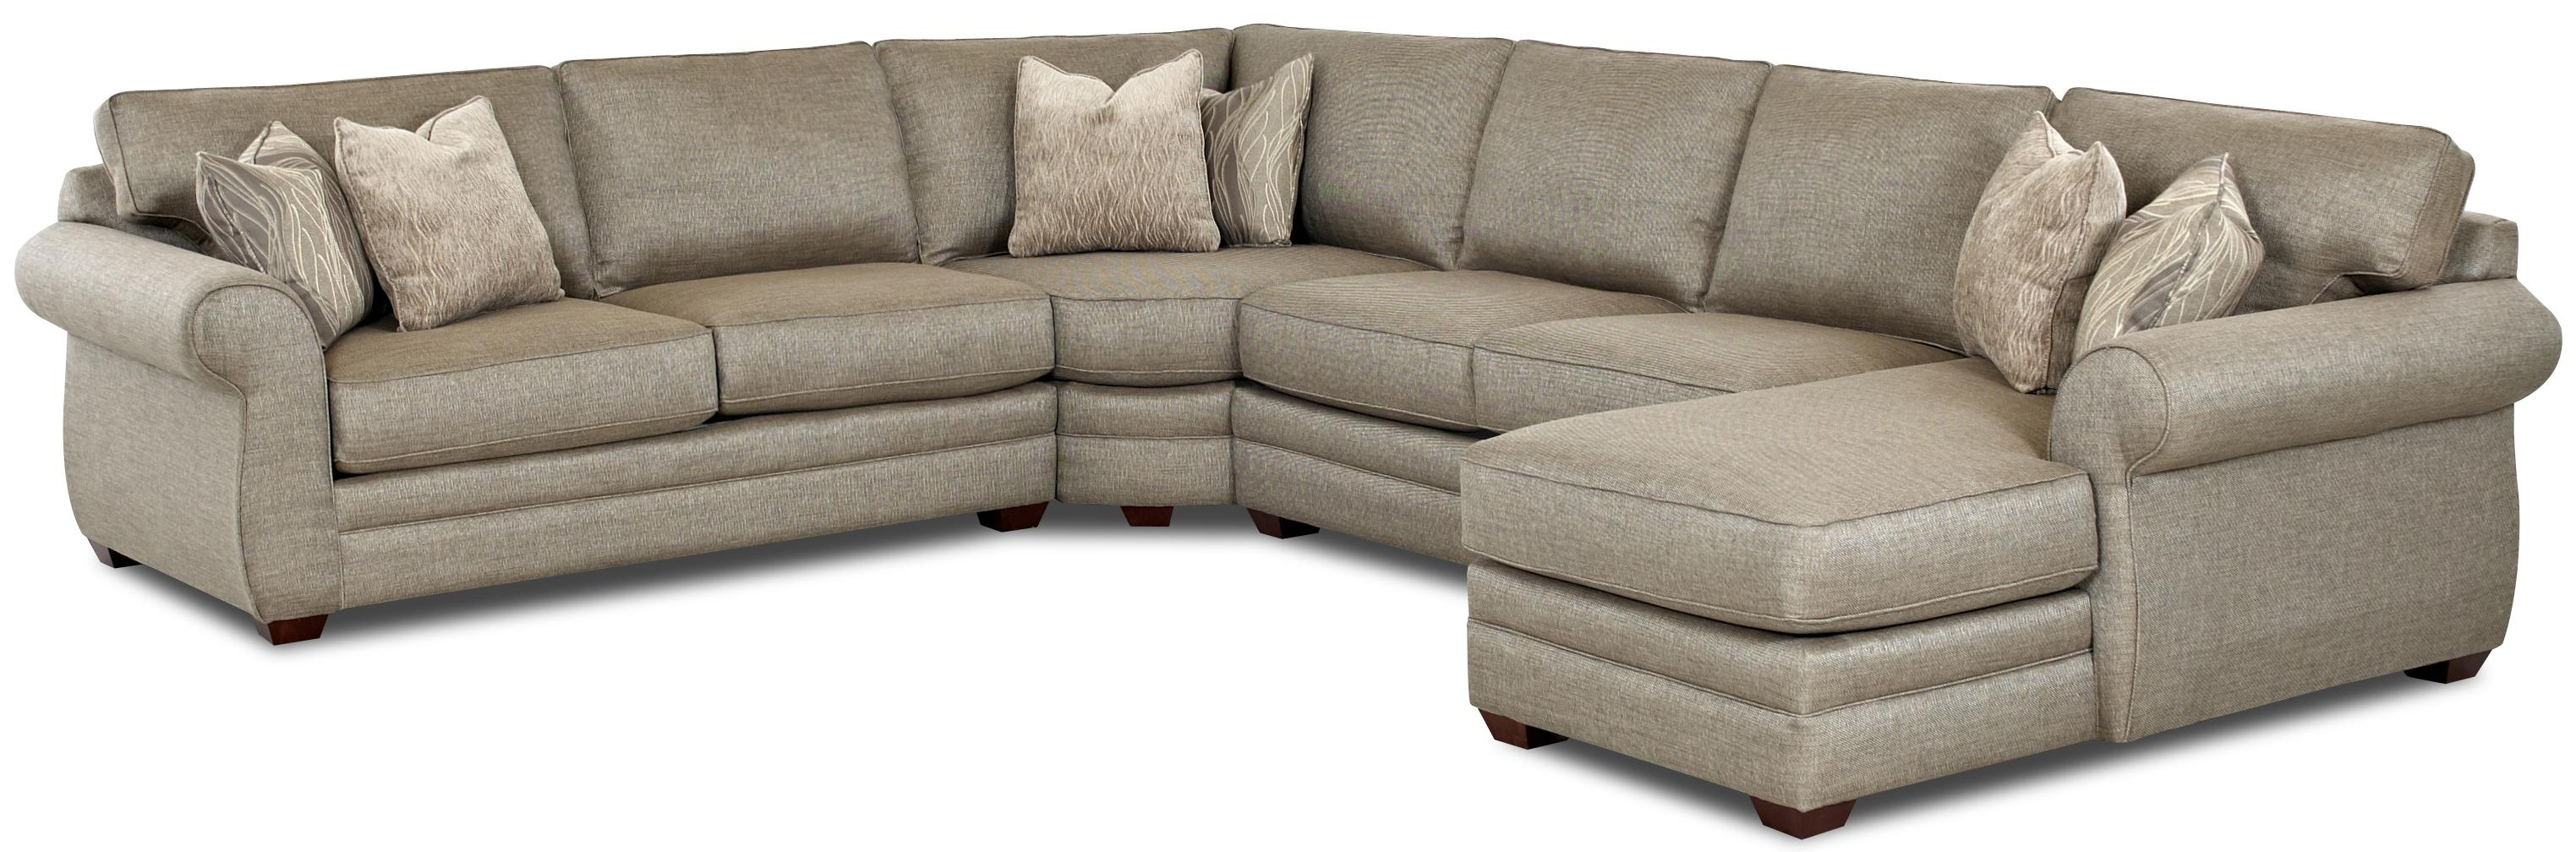 Klaussner Clanton Transitional Sectional Sofa With Right Chaise And With Pittsburgh Sectional Sofas (Gallery 8 of 10)